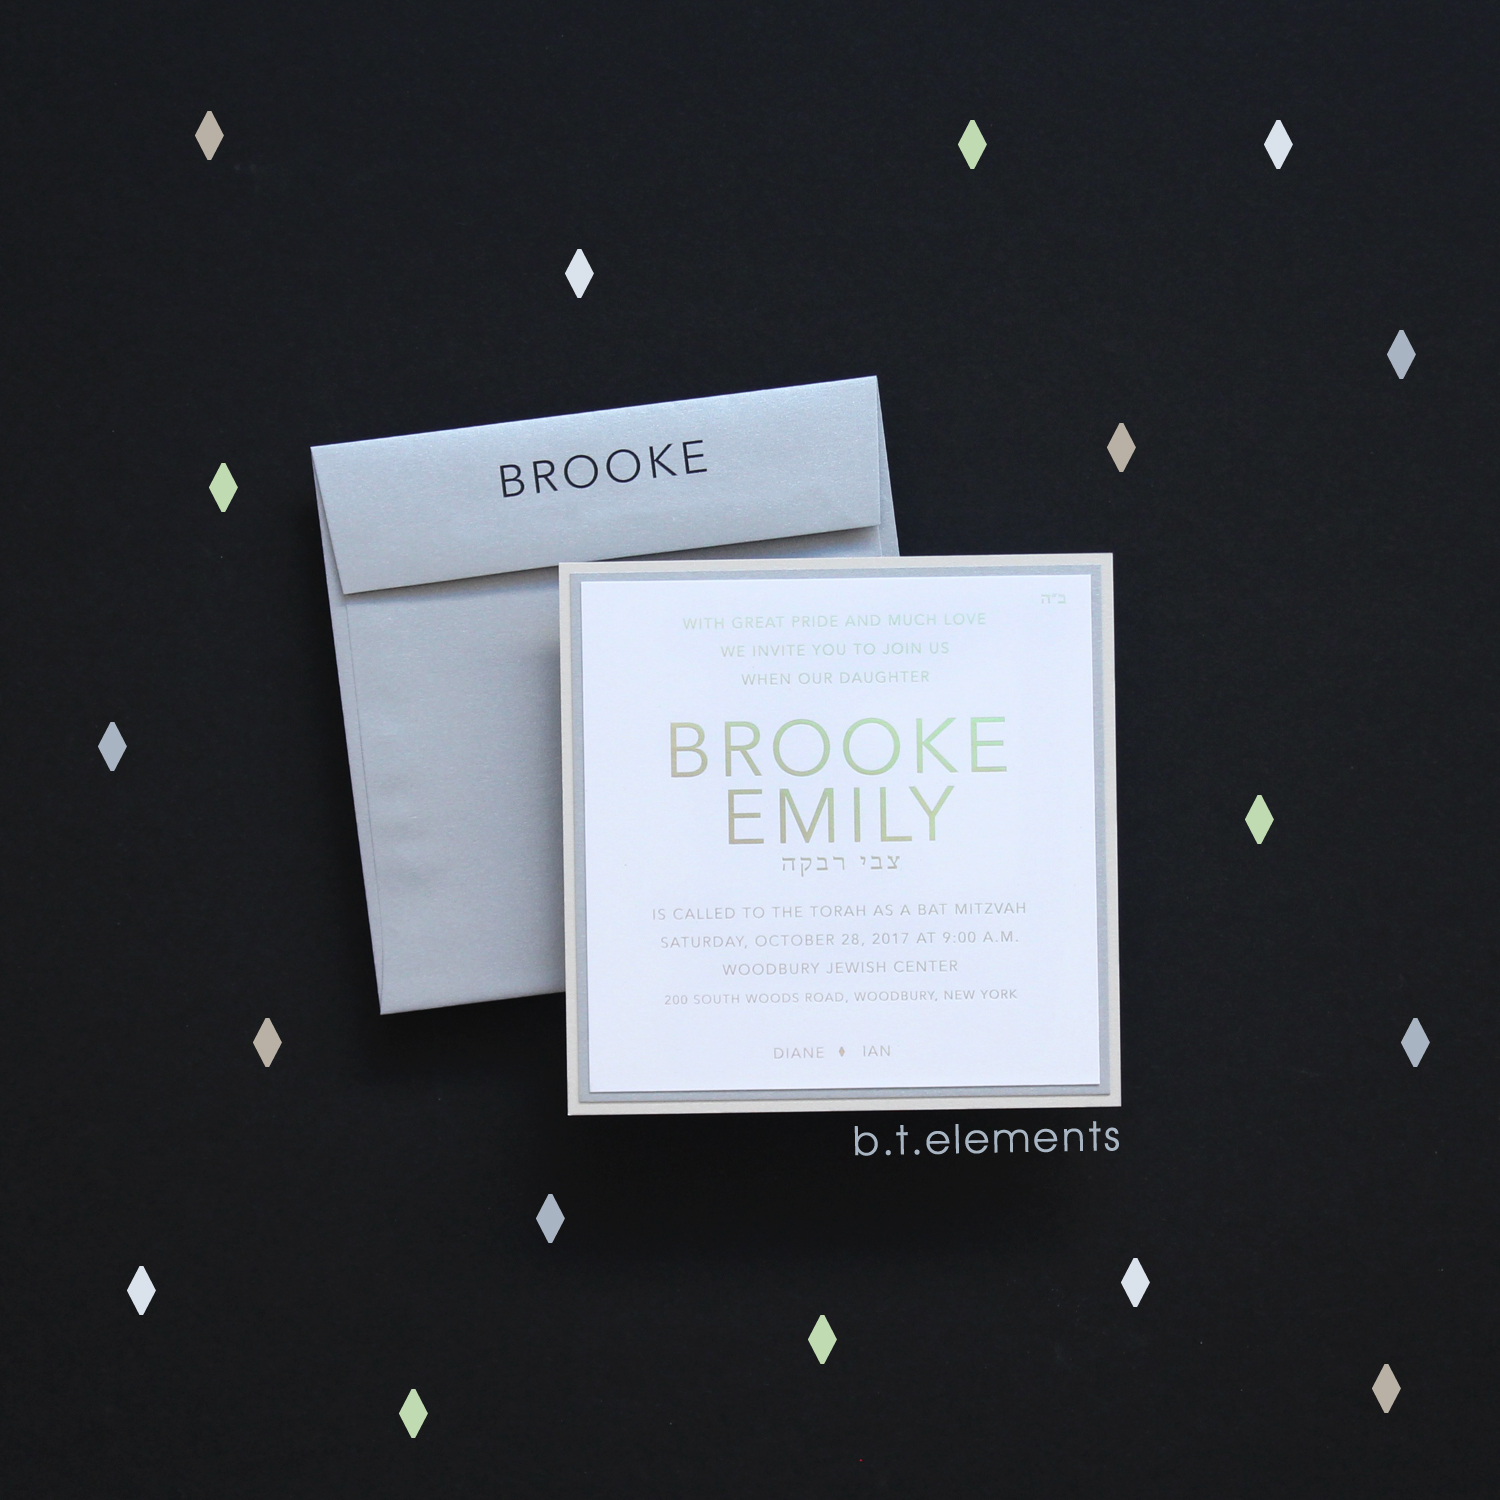 Brooke's Bat Mitzvah Invitation, 2017   Store: More than Paper in Great Neck, NY